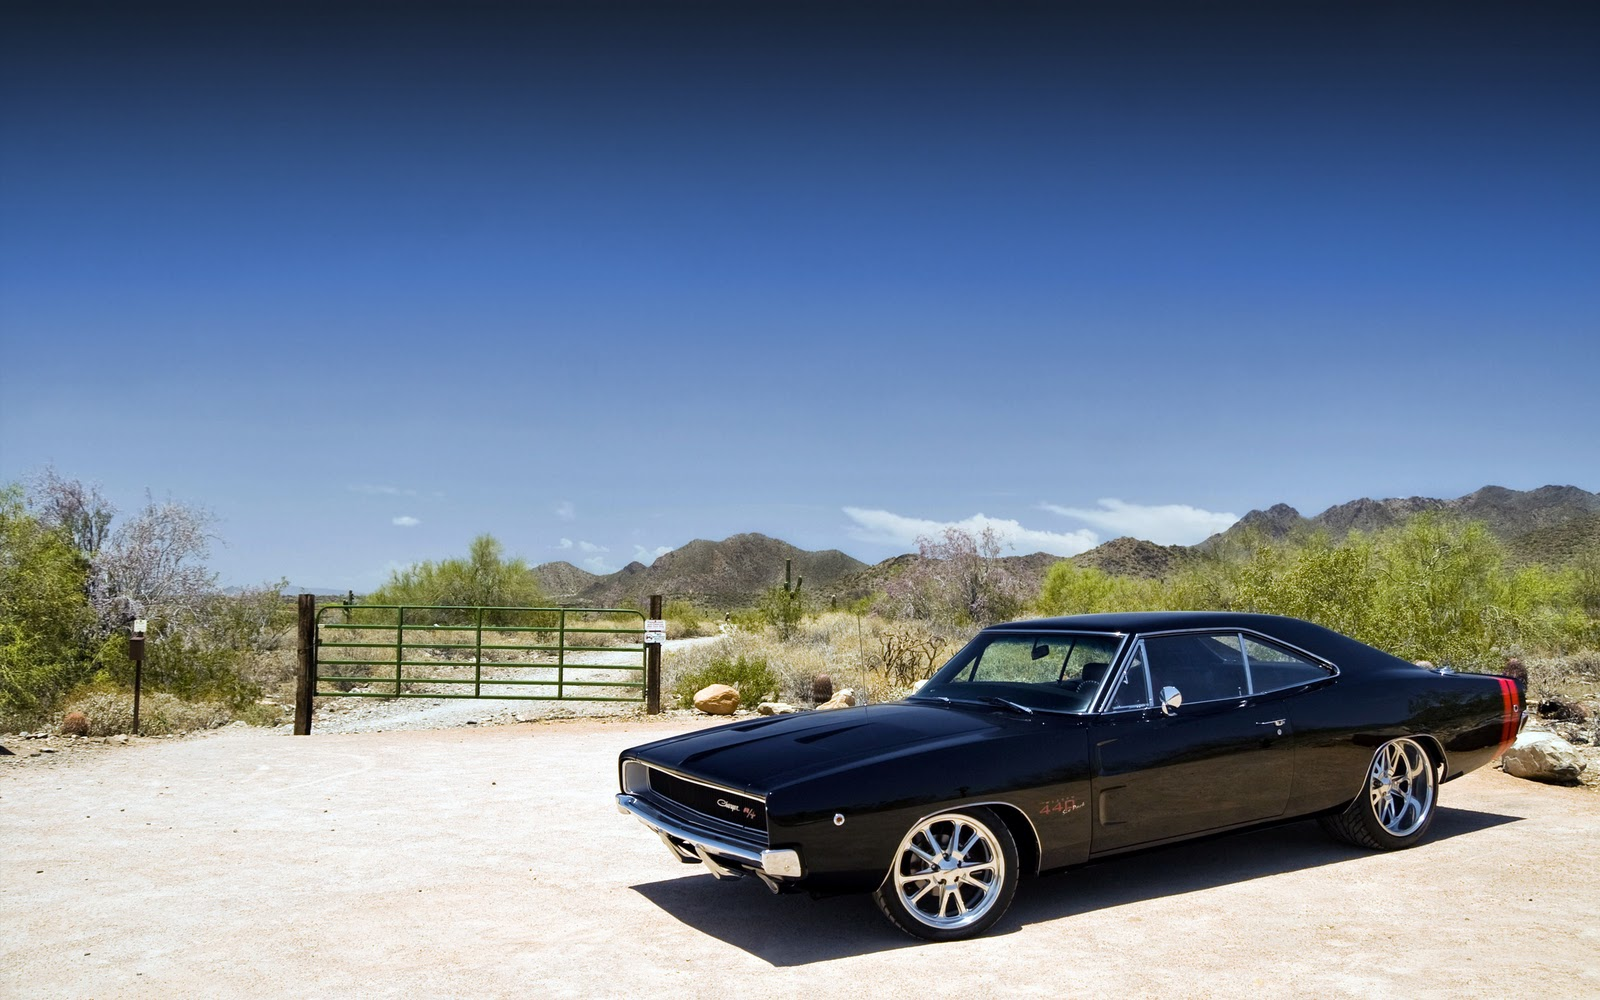 super muscle car Camaro SS Chevy legend 2012 download wallpapers 1600x1000